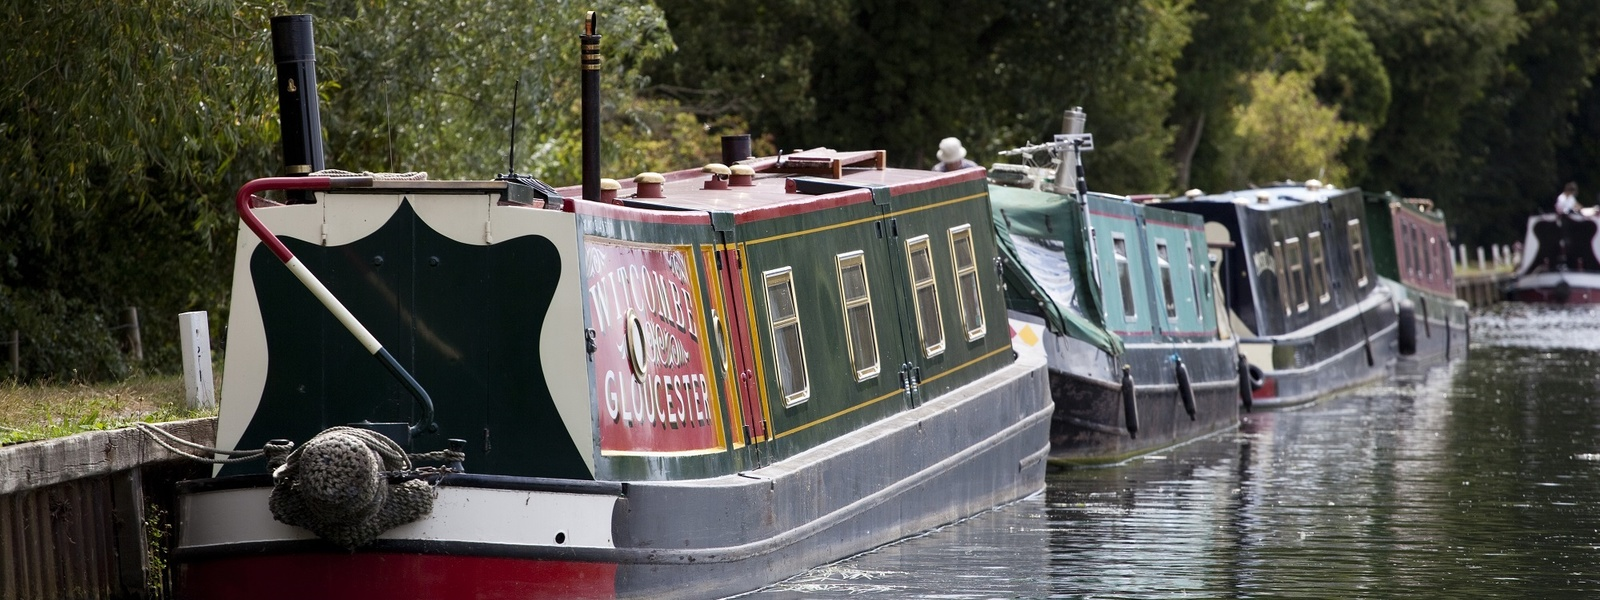 17_UK_Cotswolds_saul canal boats 4.jpg